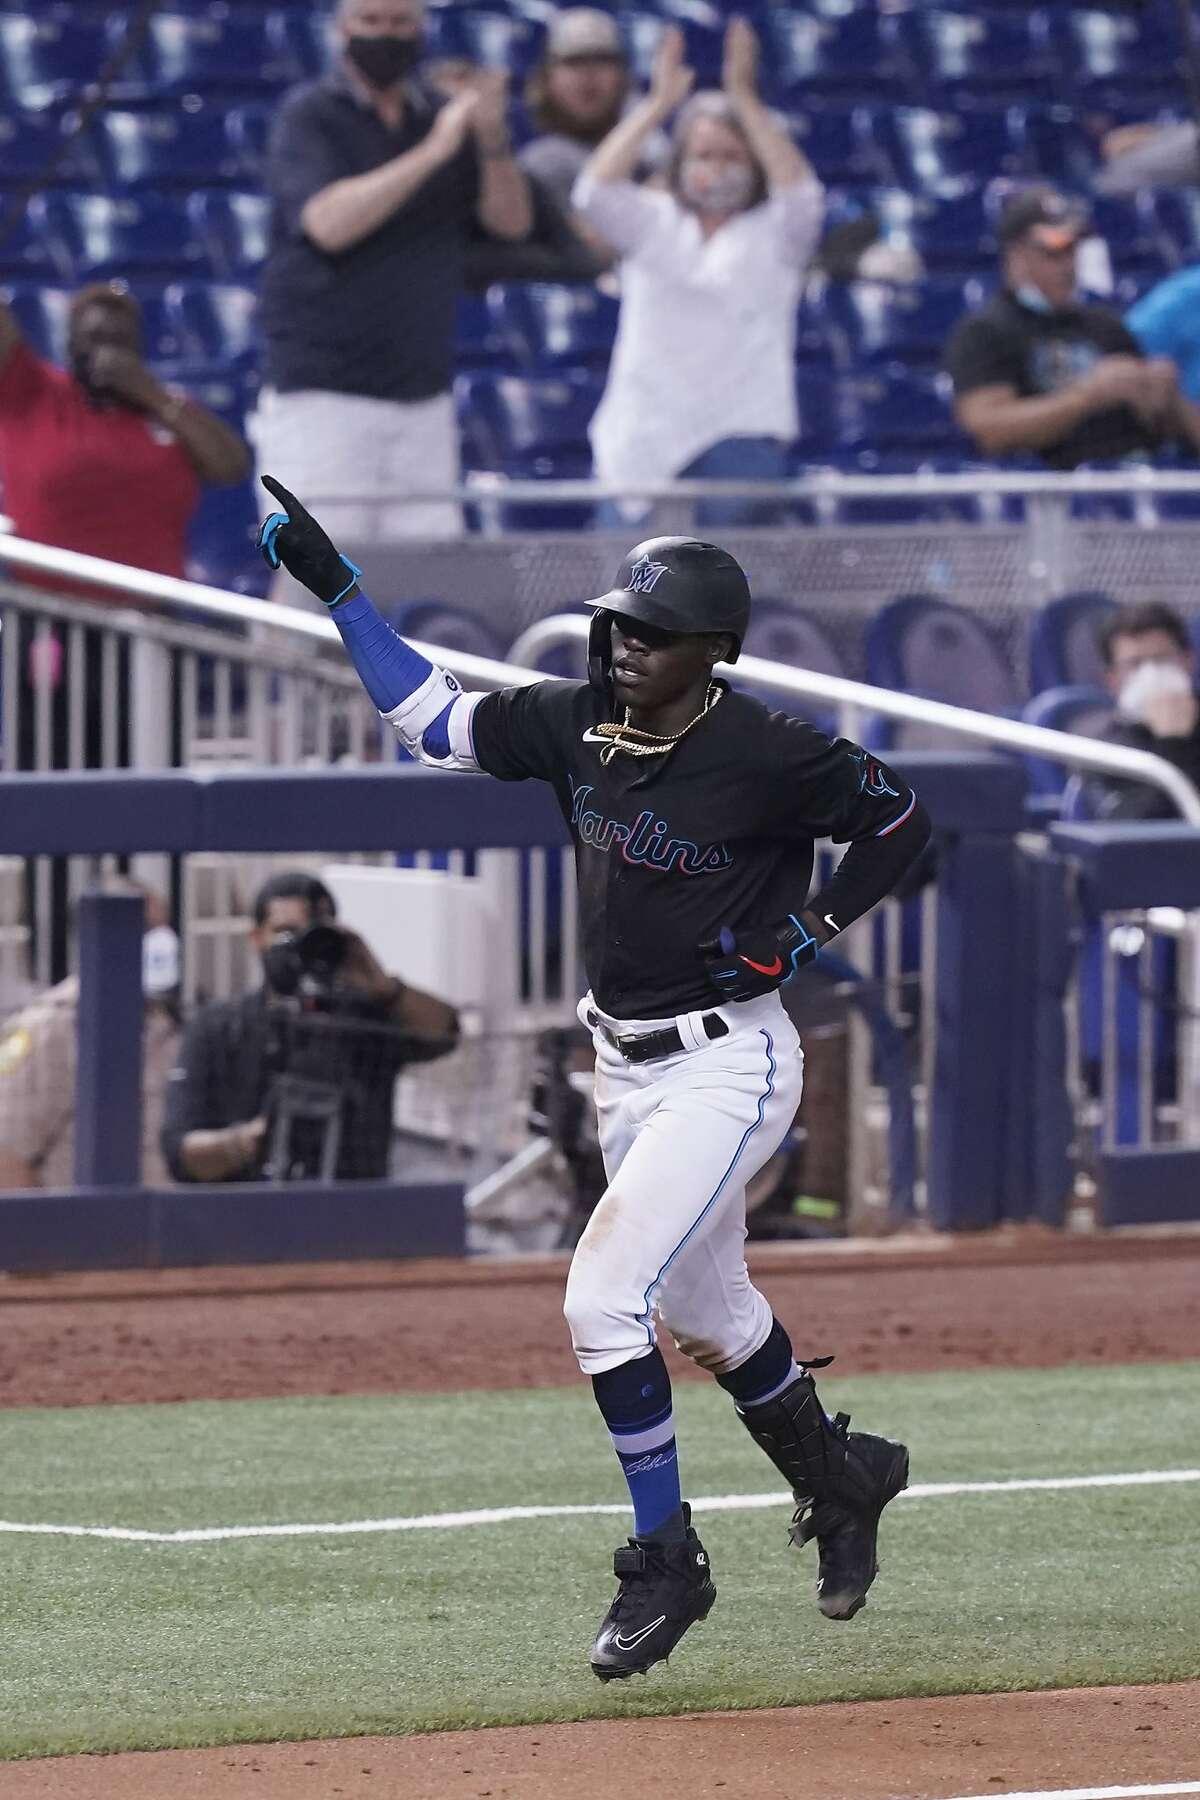 Miami Marlins' Jazz Chisholm Jr. gestures after hitting a home run during the fifth inning of a baseball game against the San Francisco Giants, Friday, April 16, 2021, in Miami. (AP Photo/Marta Lavandier)